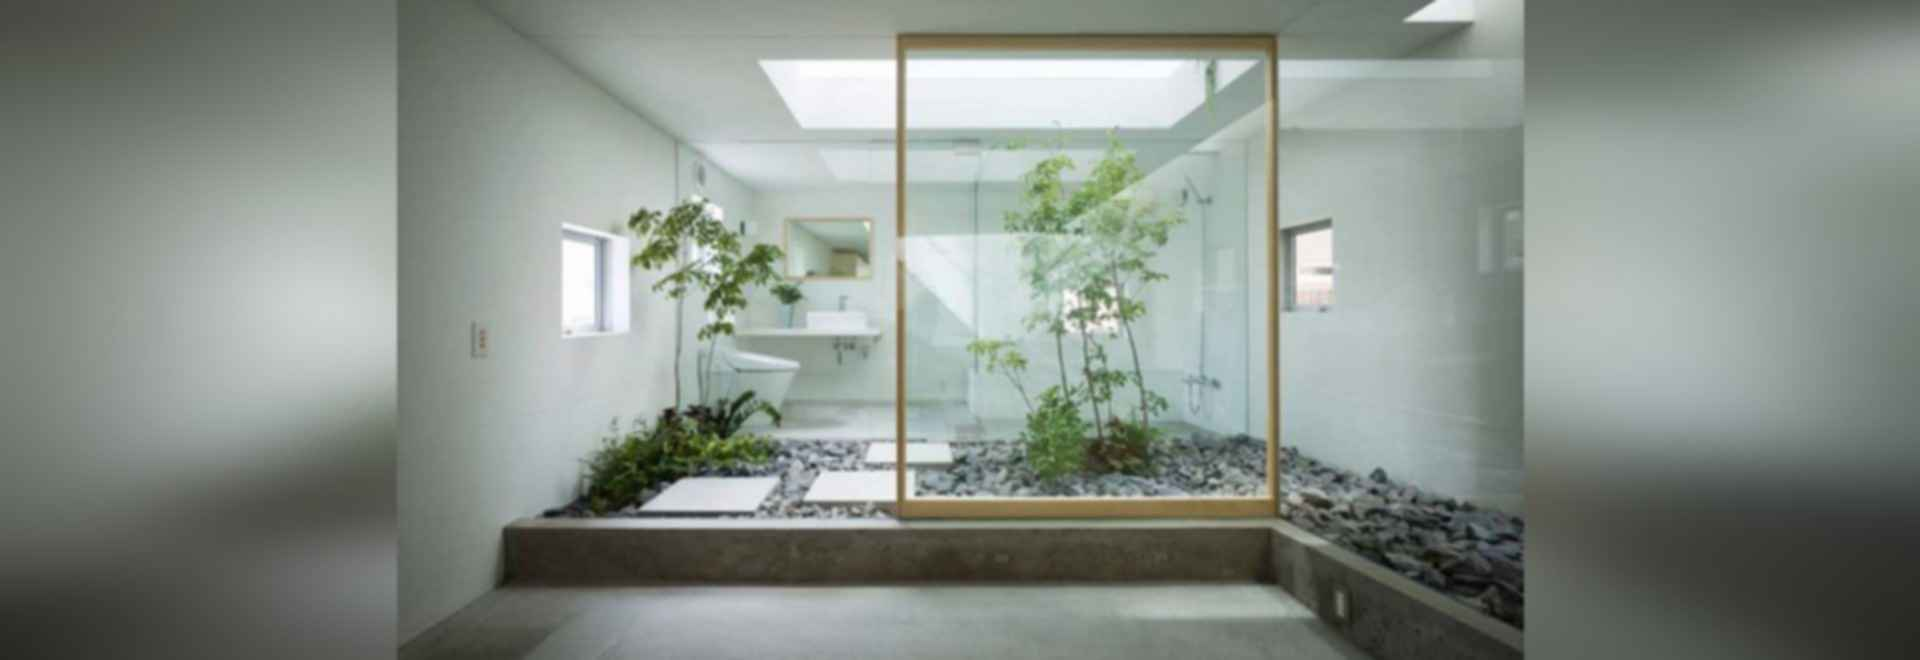 House in Moriyama - Interior